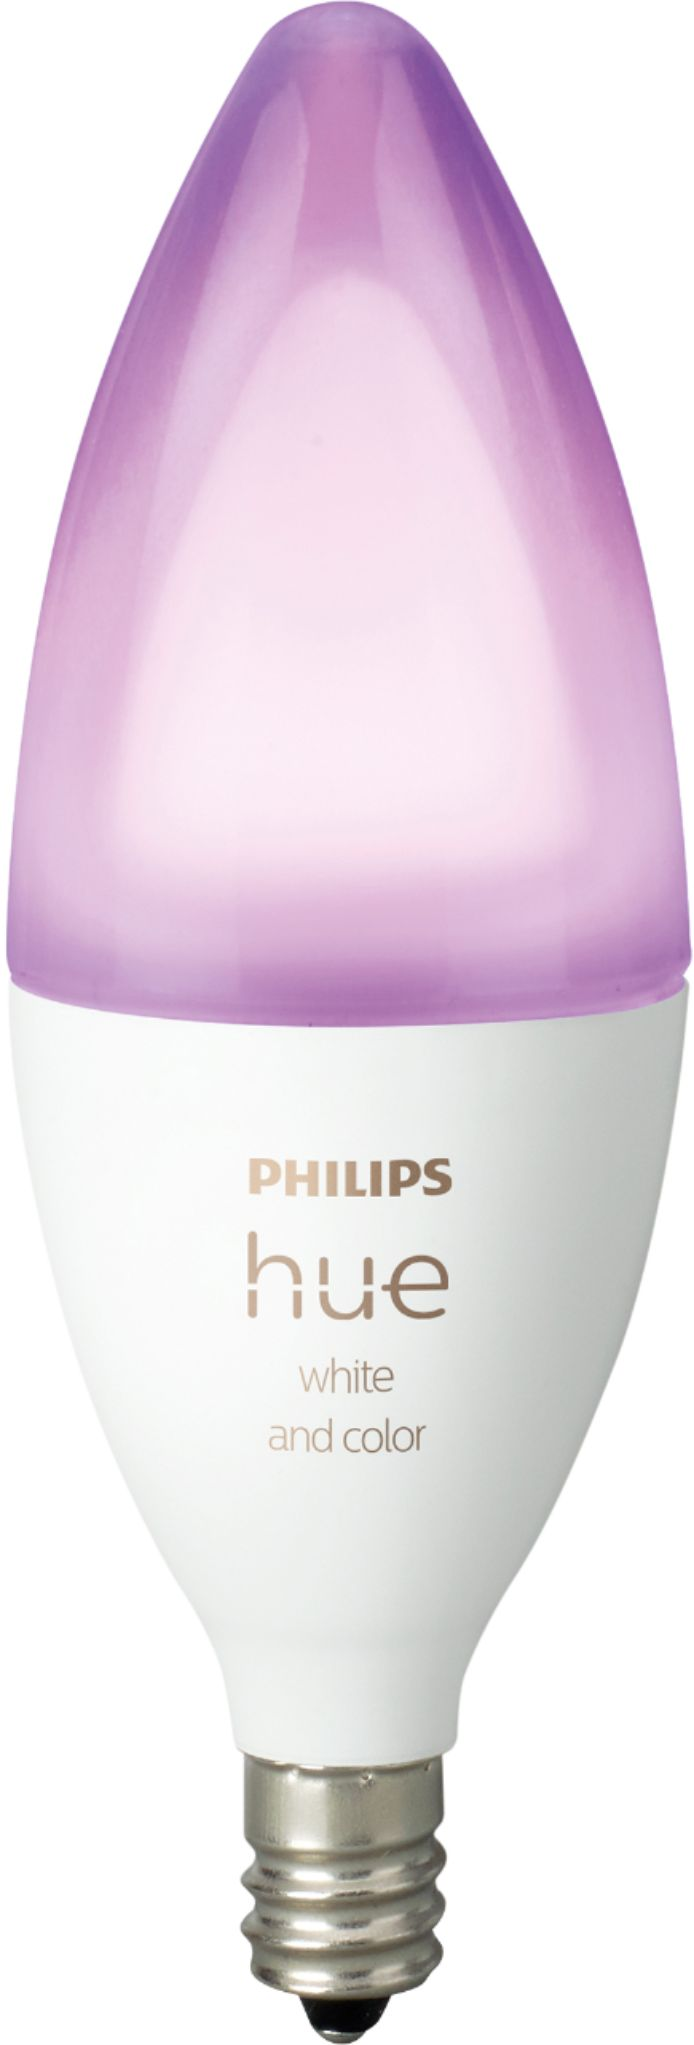 Eclairage Led Philips Philips Hue White And Color Ambiance E12 Wi Fi Smart Led Decorative Candle Bulb Multicolor